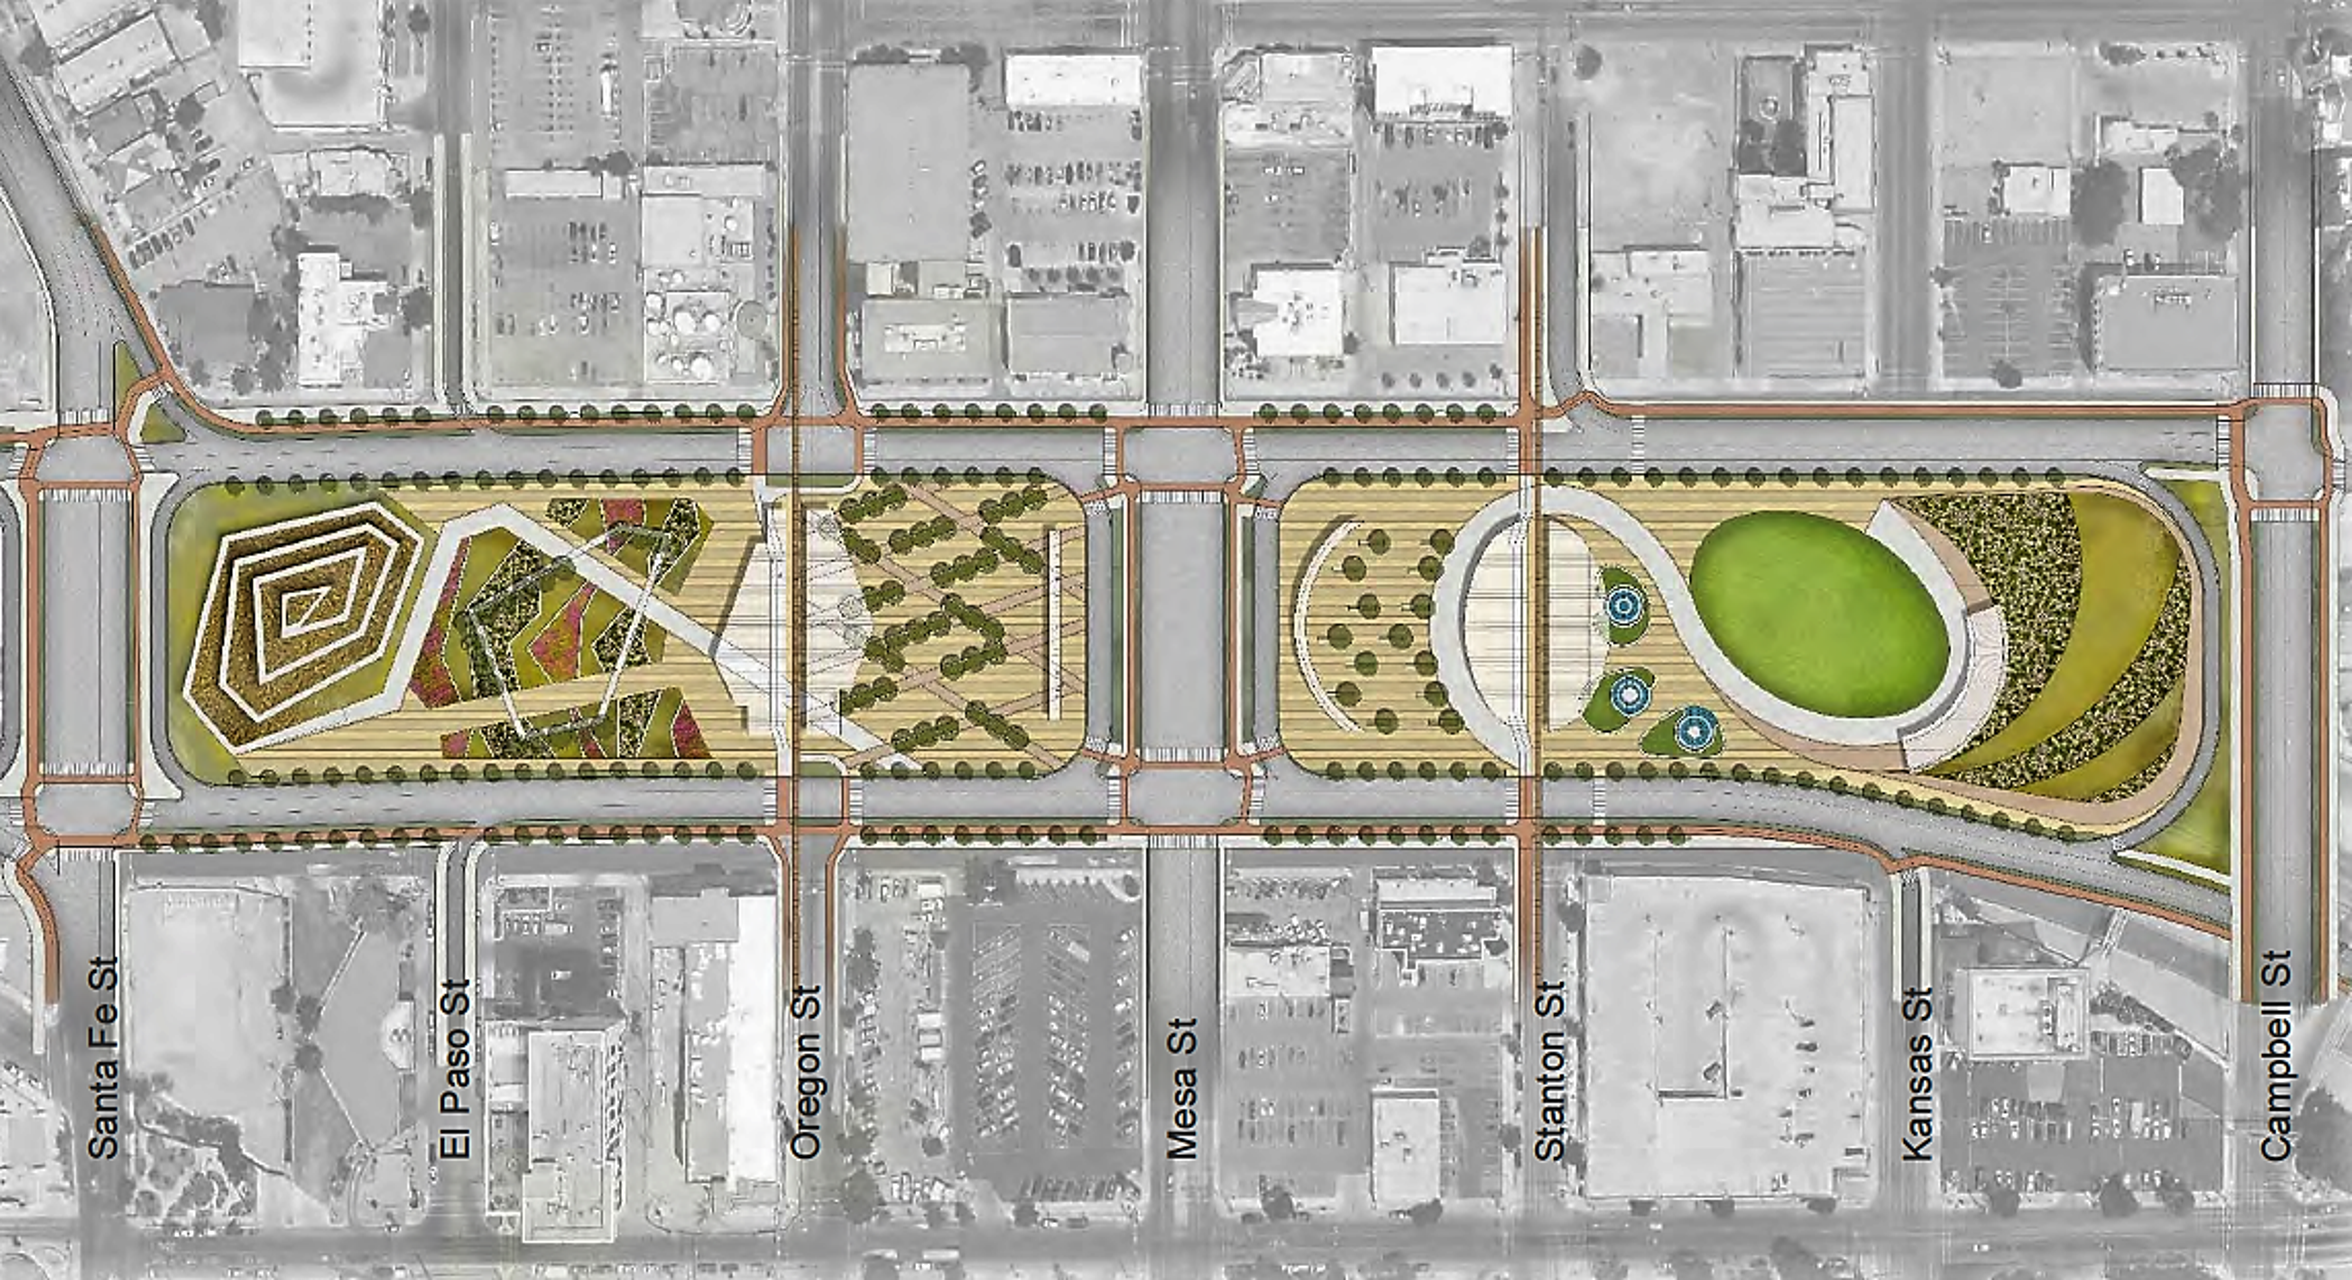 Concepts for widening I-10 through Downtown include putting deck parks above the freeway as shown in this rendering.